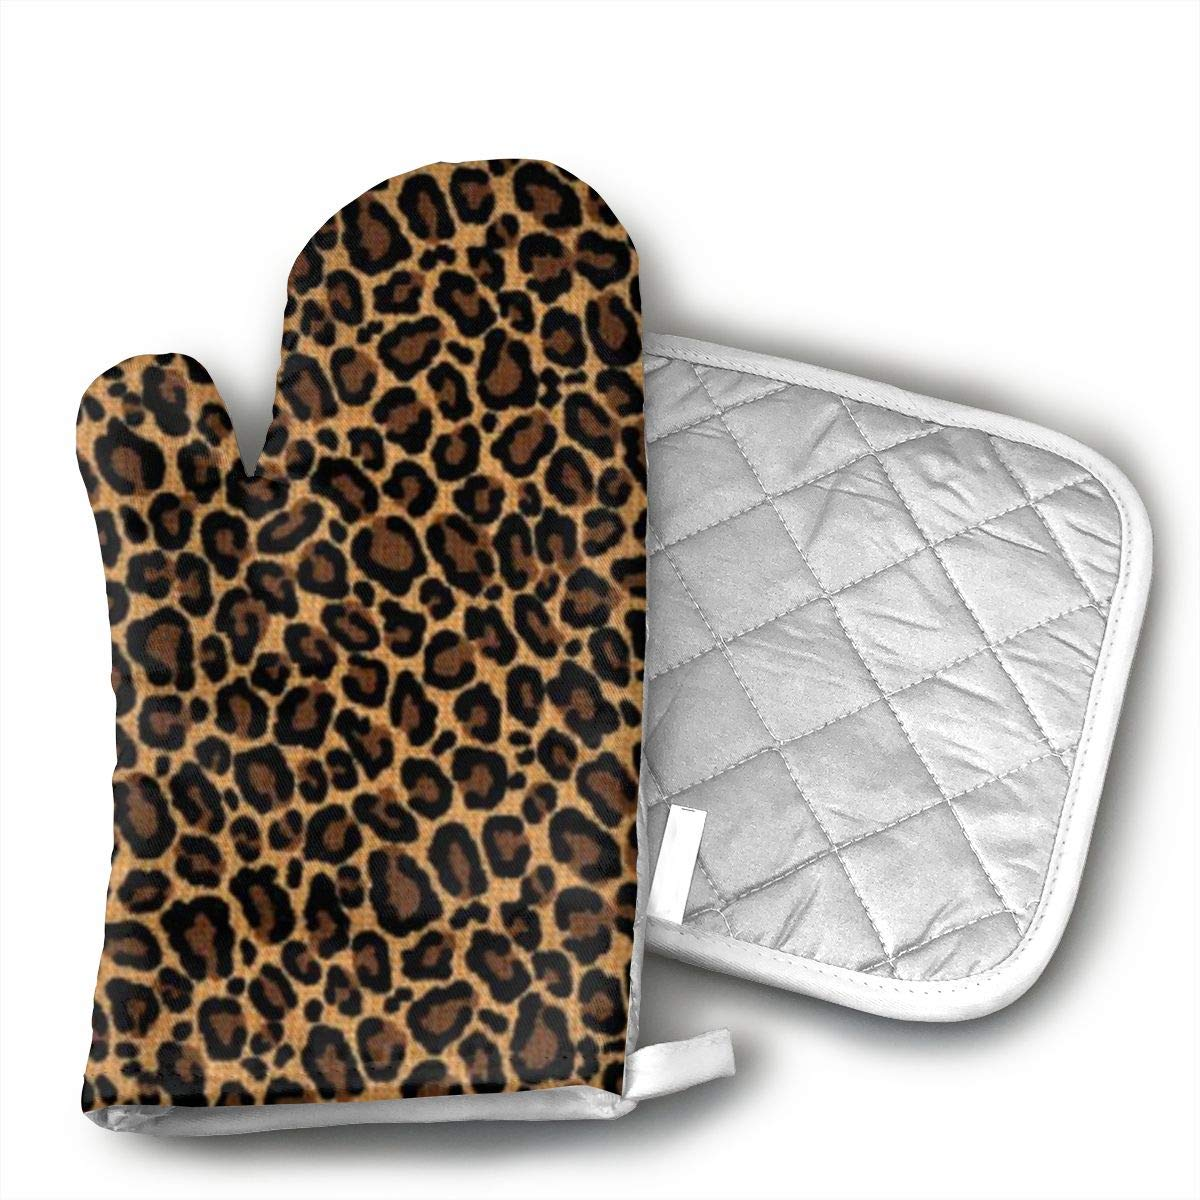 HGUIDHG DVIKH Leopard Skin Oven Mitts+Insulated Square Mat,Heat Resistant Kitchen Gloves Soft Insulated Deep Pockets, Non-Slip Handles